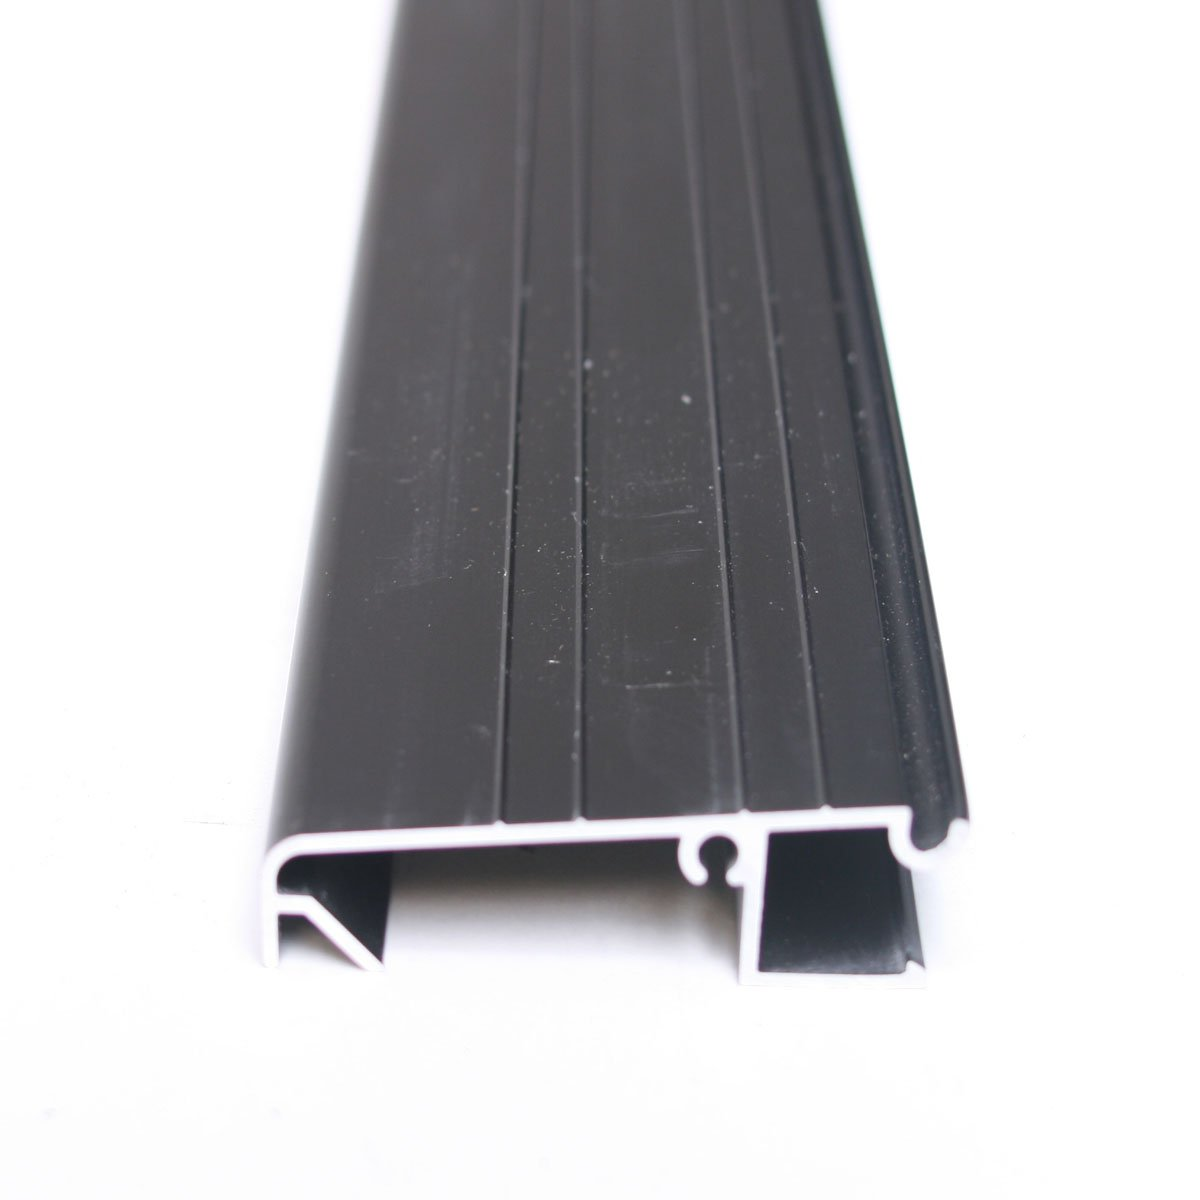 M-D Building Products 67107 TH200 2-Inch by 36-Inch Inswing Extenders